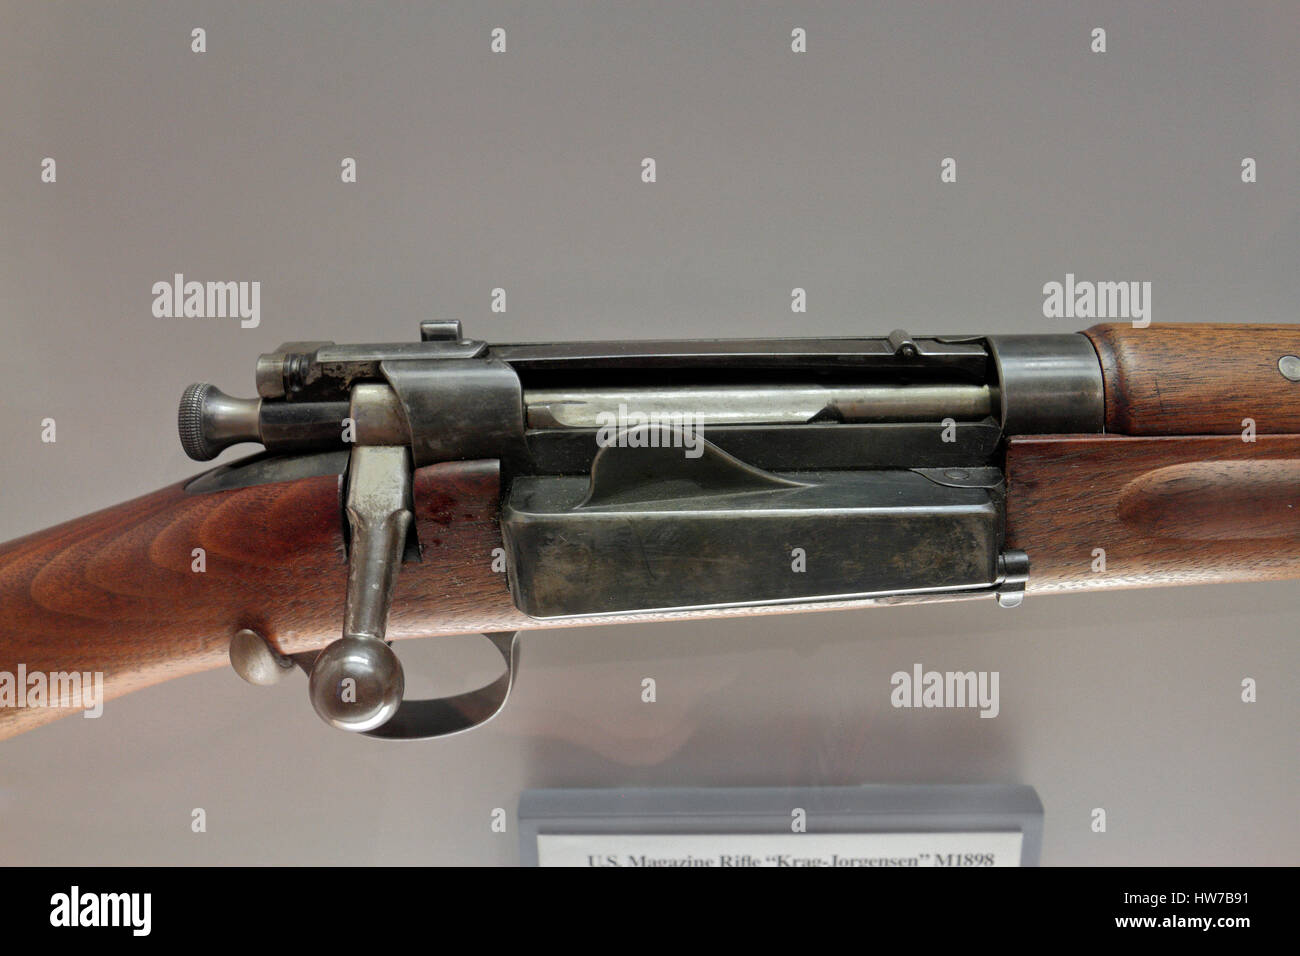 The US Magazine Rifle 'Krag-Jorgensen' M1898 on display in the Springfield Armory National Historic Site, - Stock Image